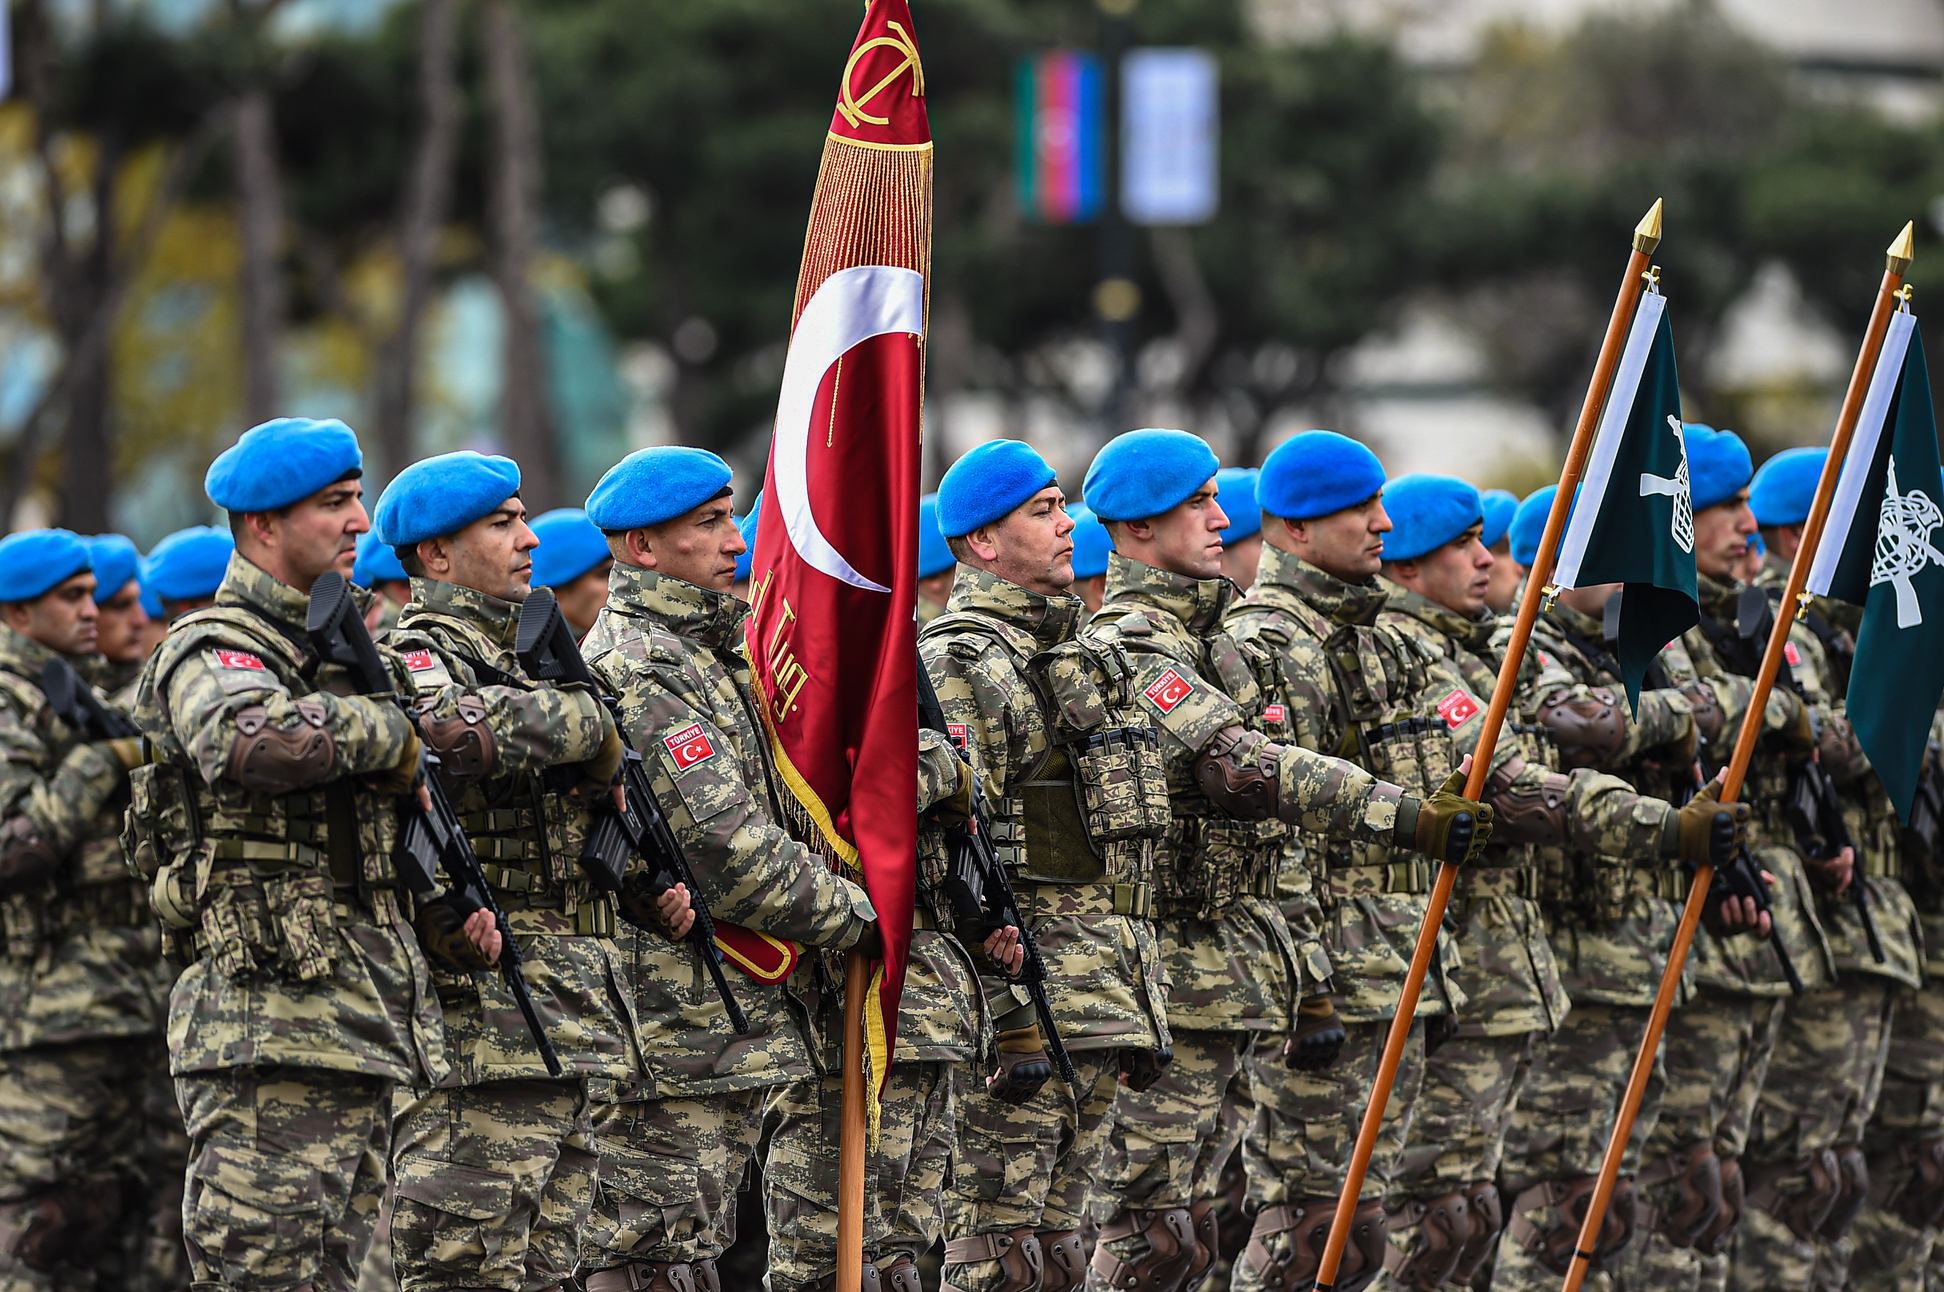 File:Servicemen of the Turkish Special Forces Command, led by the Captain  Harun Ergin 3.jpg - Wikimedia Commons